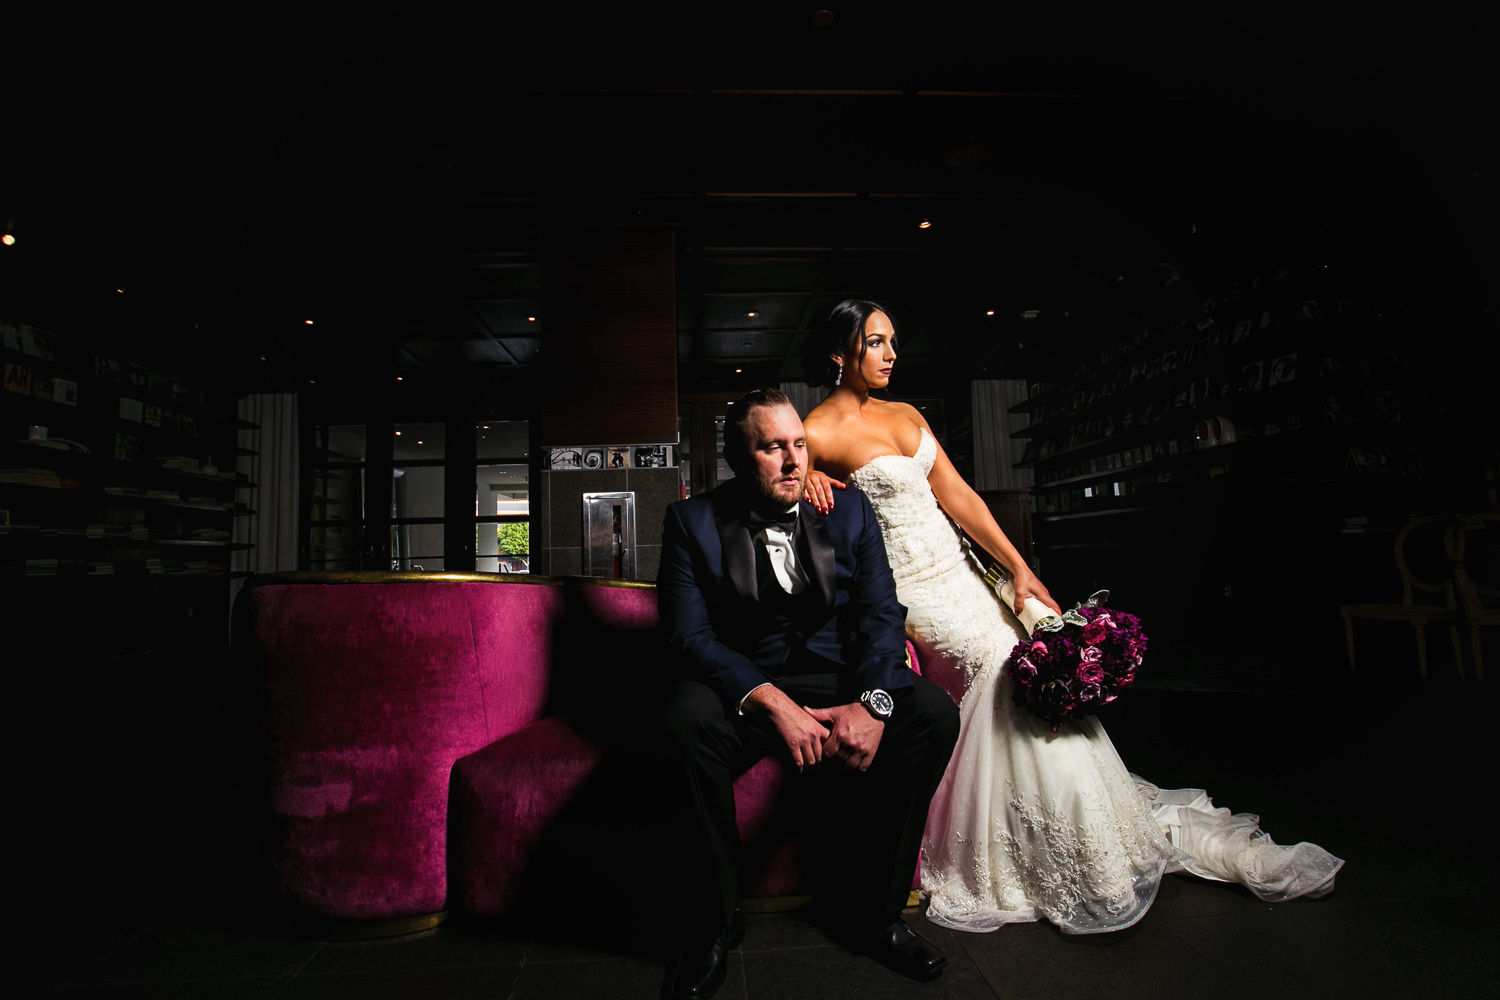 SLS Beverly Hills Wedding - Classy Photo Of Bride and Groom Together In SLS Beverly Hills